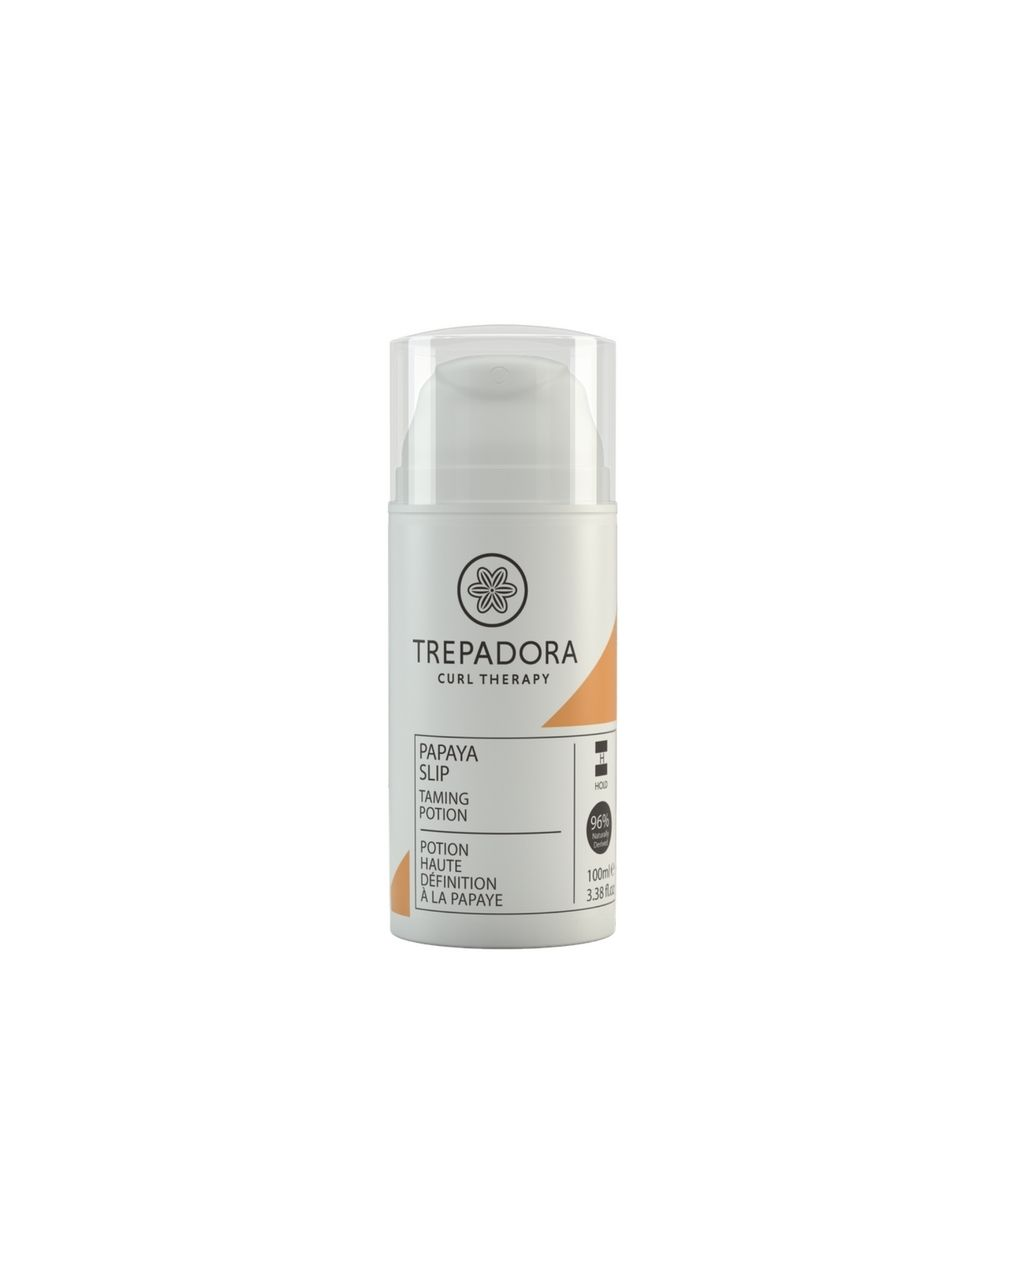 Flexible hold with this papaya extract taming potion a natural product formula that will tame frizz and define curls.